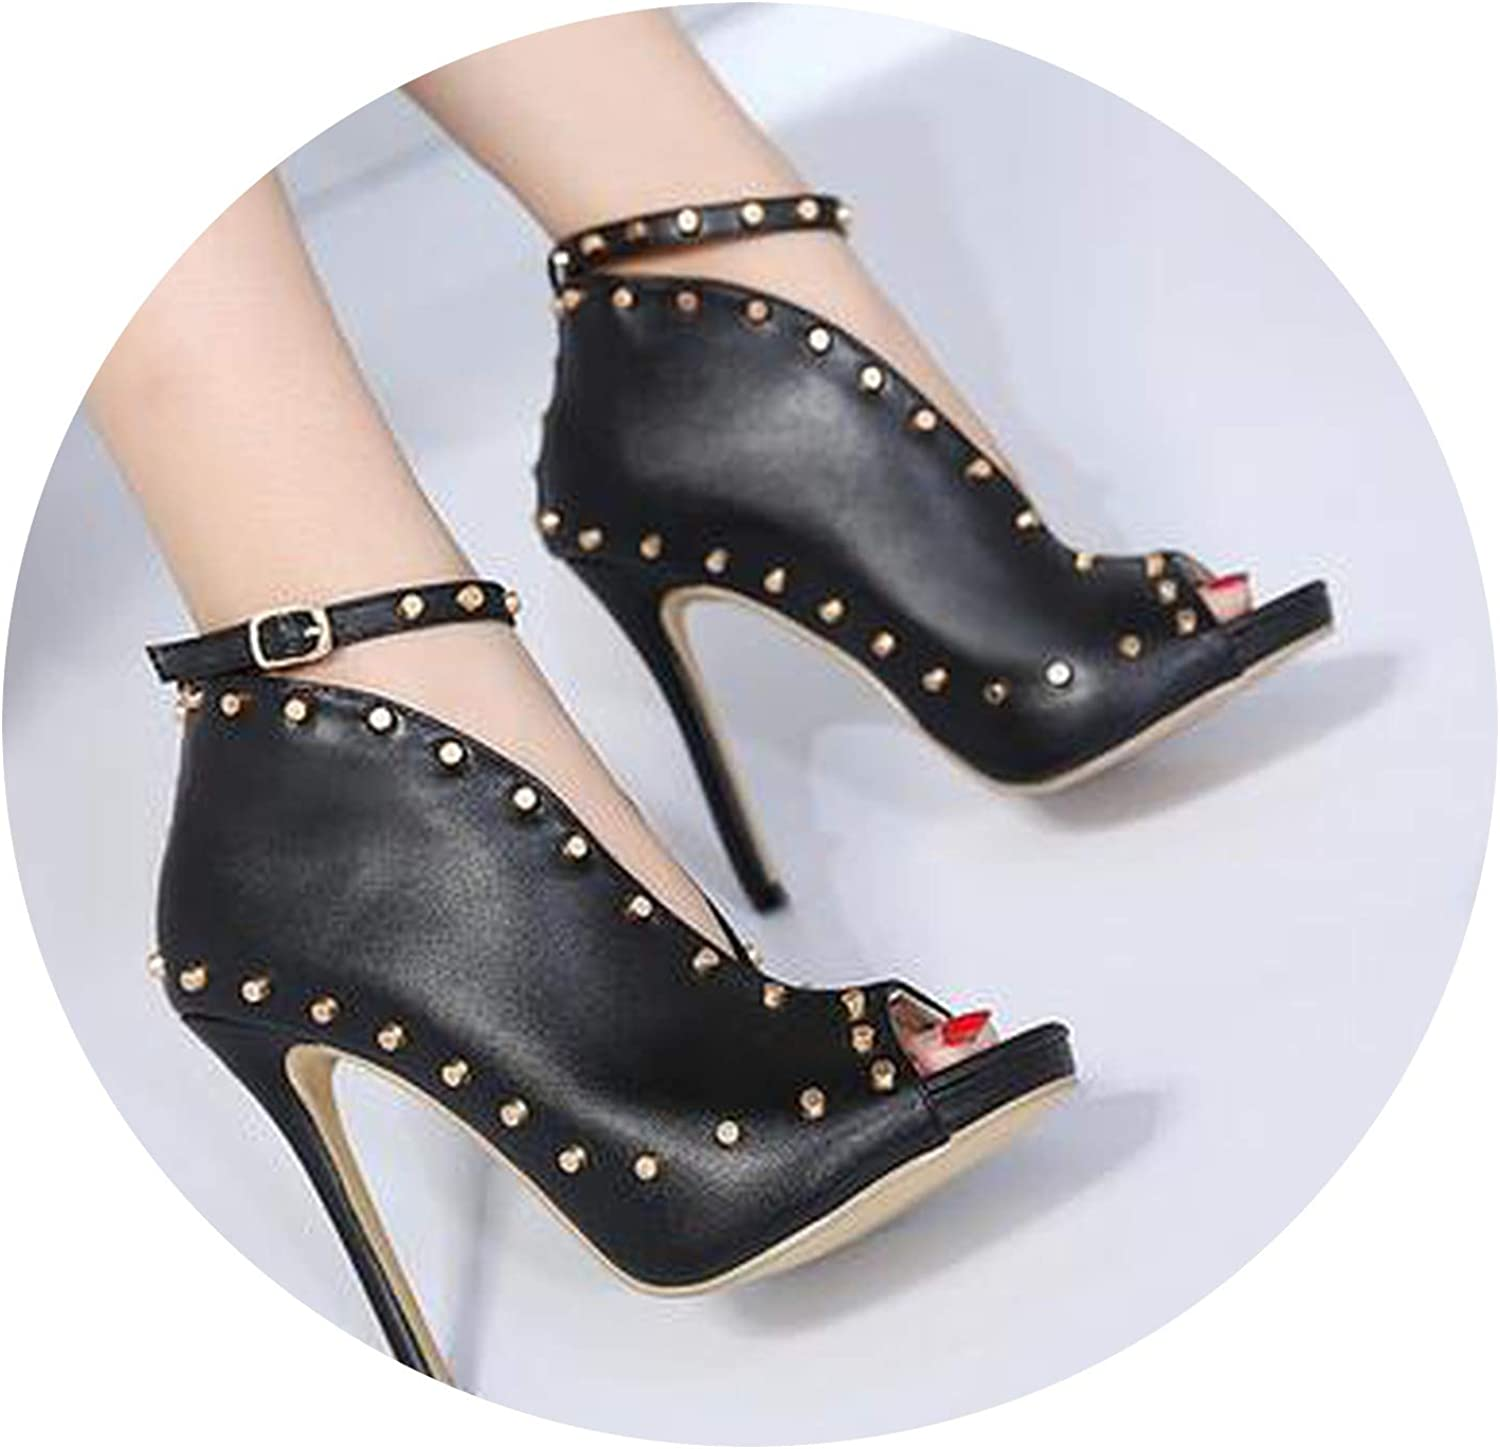 Autumn Women shoes Peep Toe Pumps High Heels shoes Ankle Boots Rivets Buckle Motorcycle Pumps